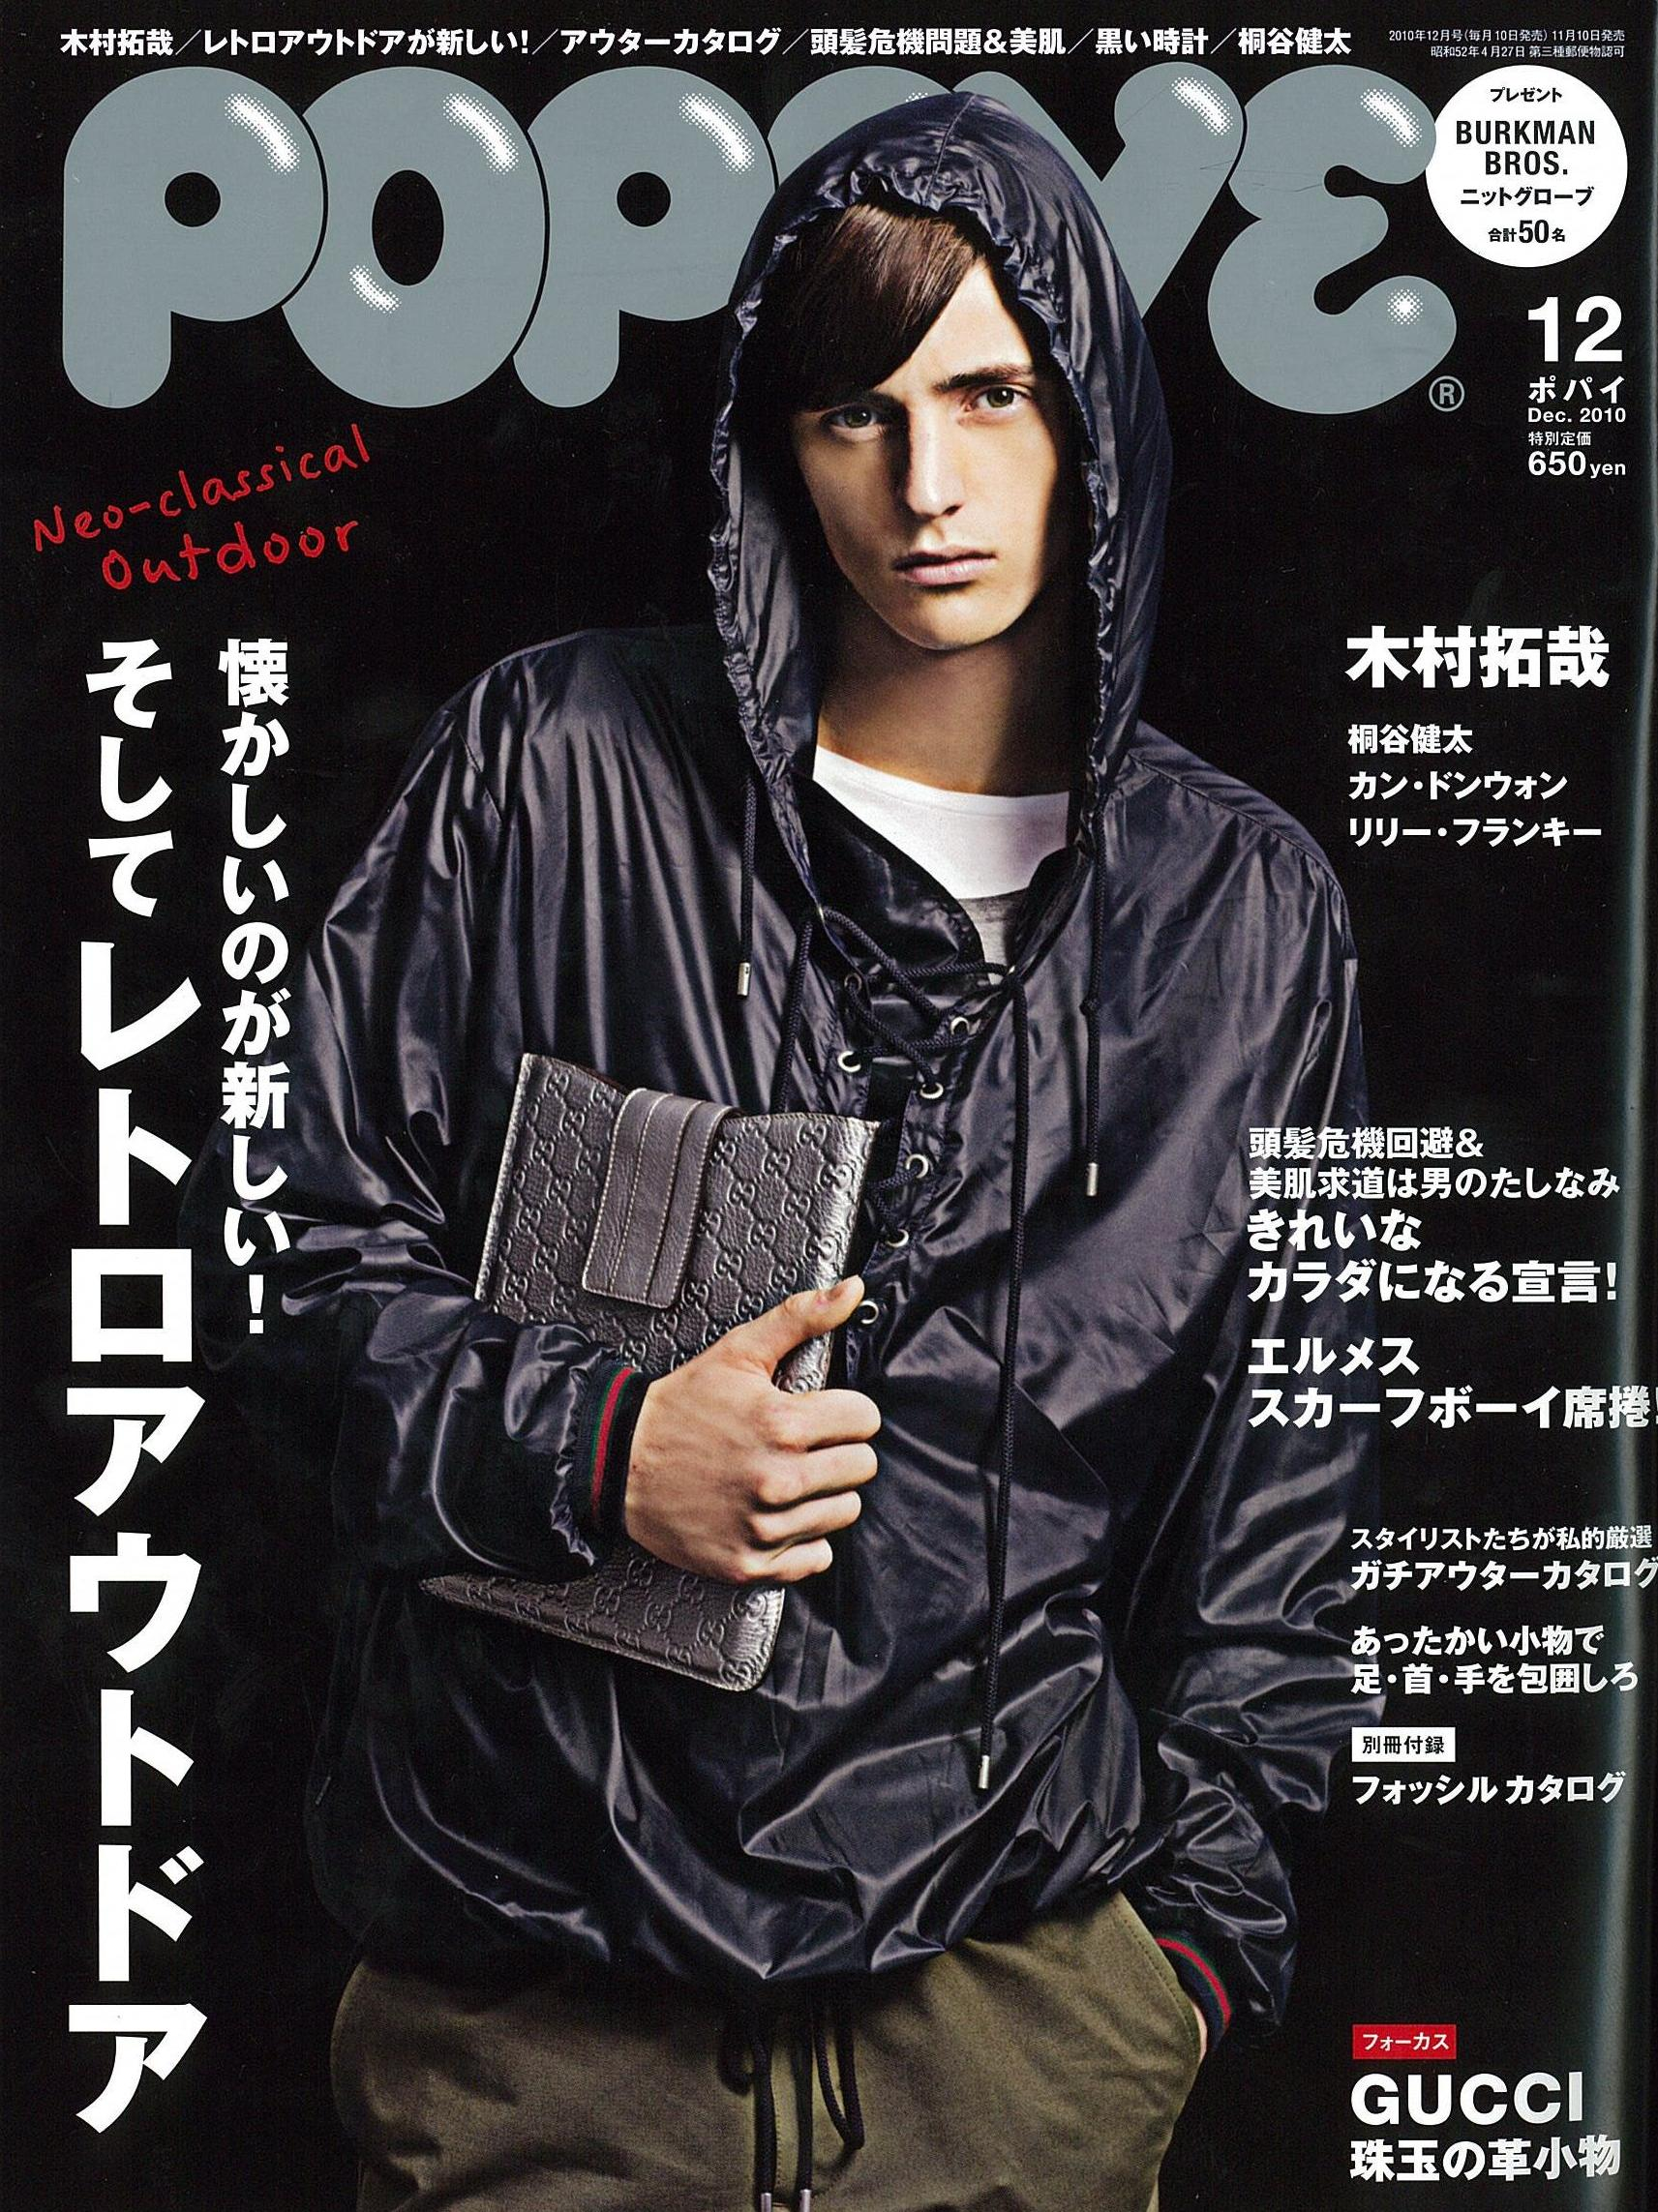 An Easy Guide To Learning Japanese With Magazines